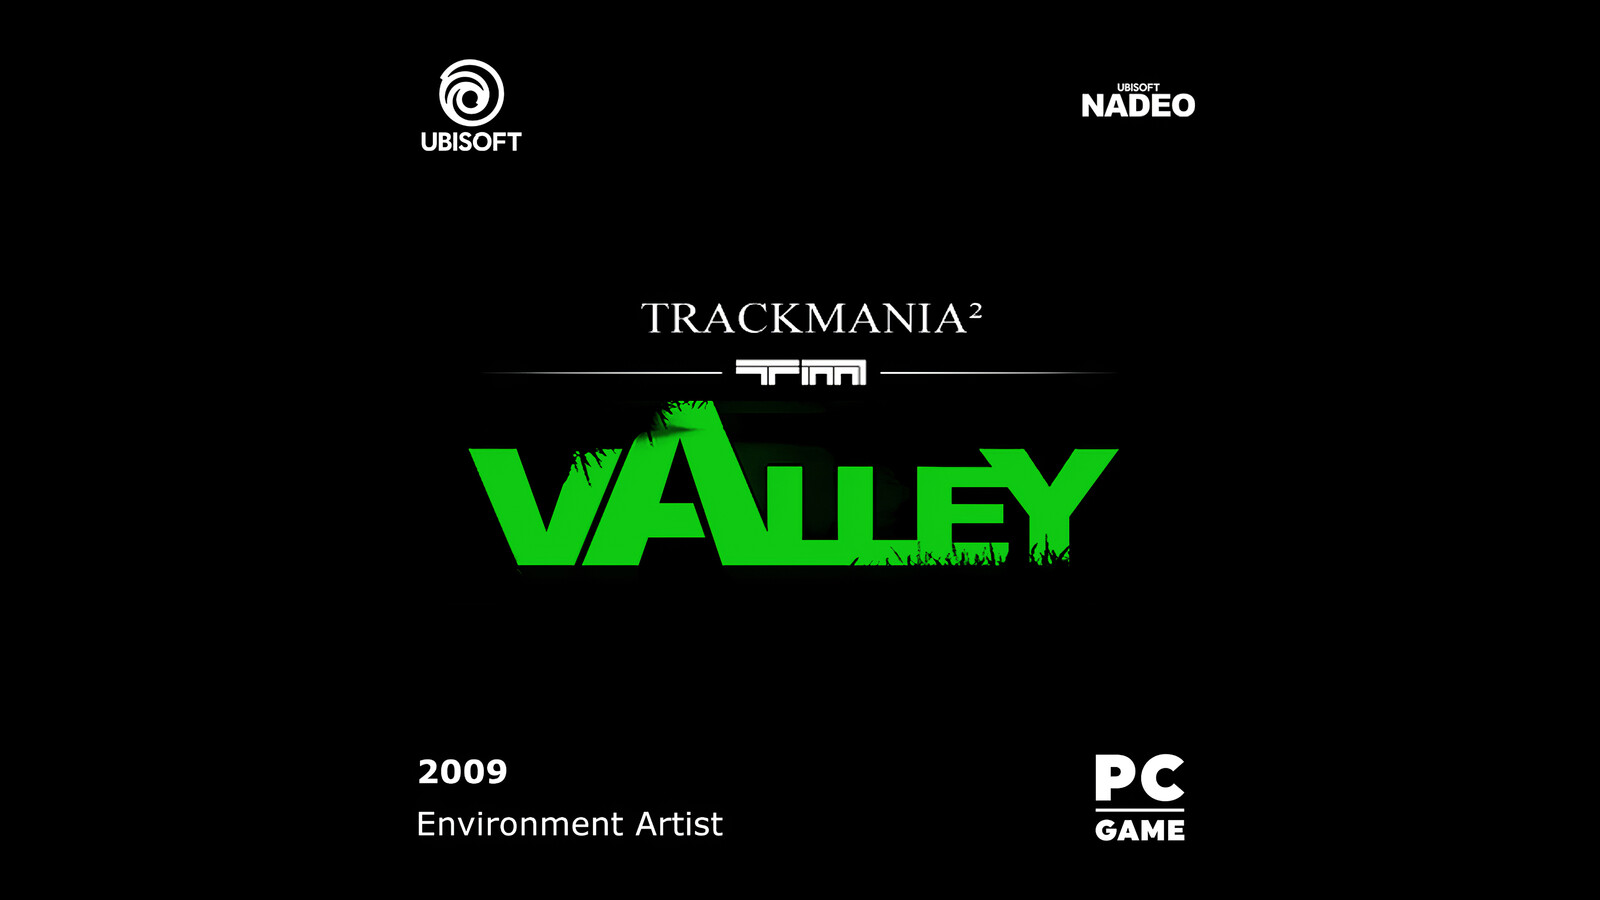 Trackmania 2 : Valley Logo